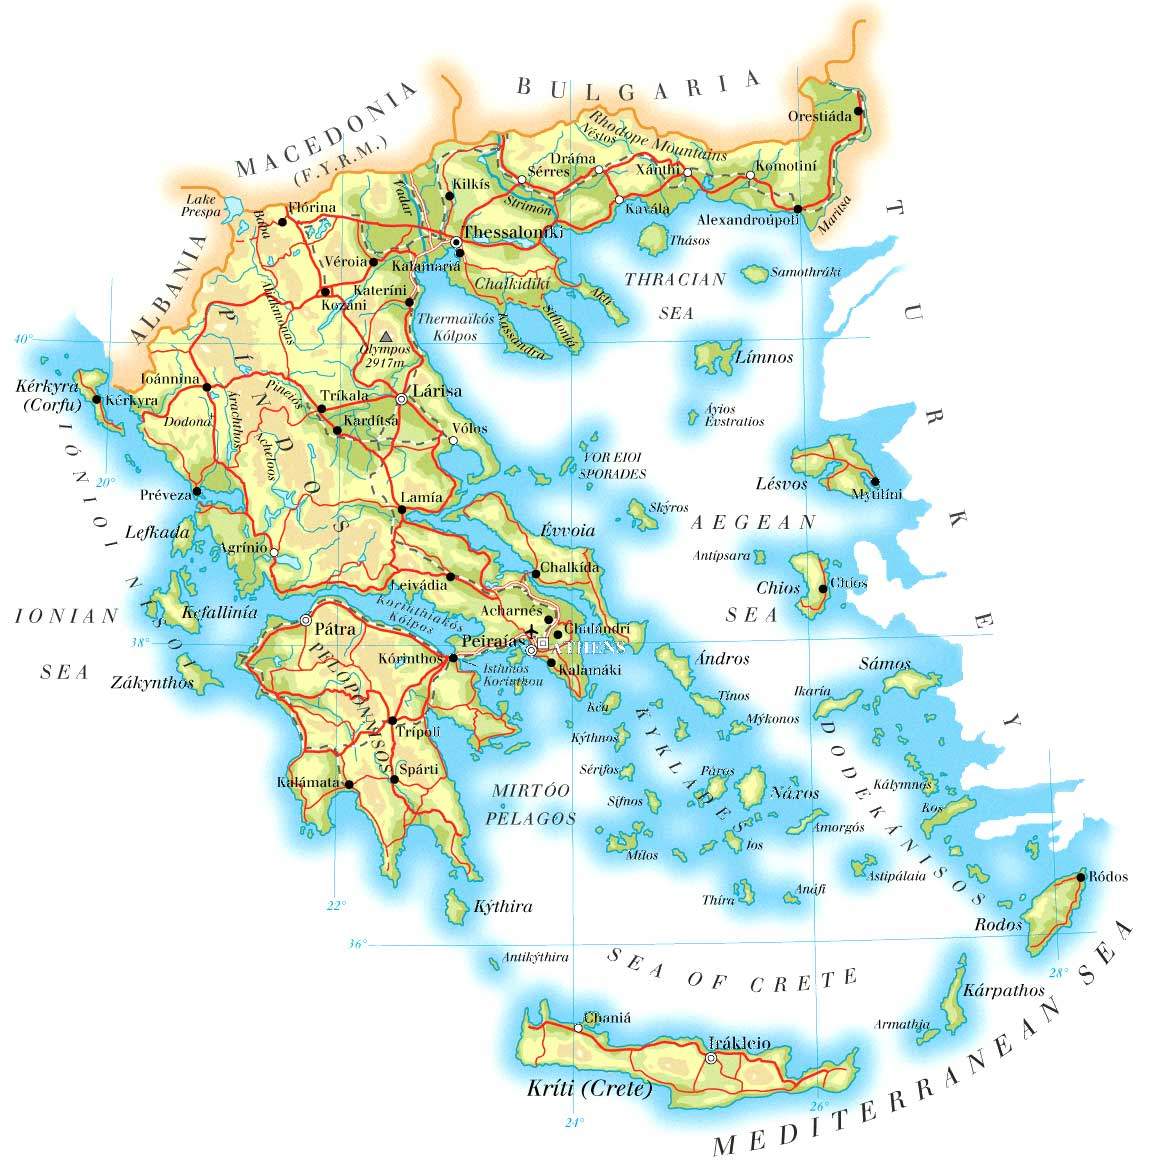 Maps of Greece Greece detailed map in English Tourist map map